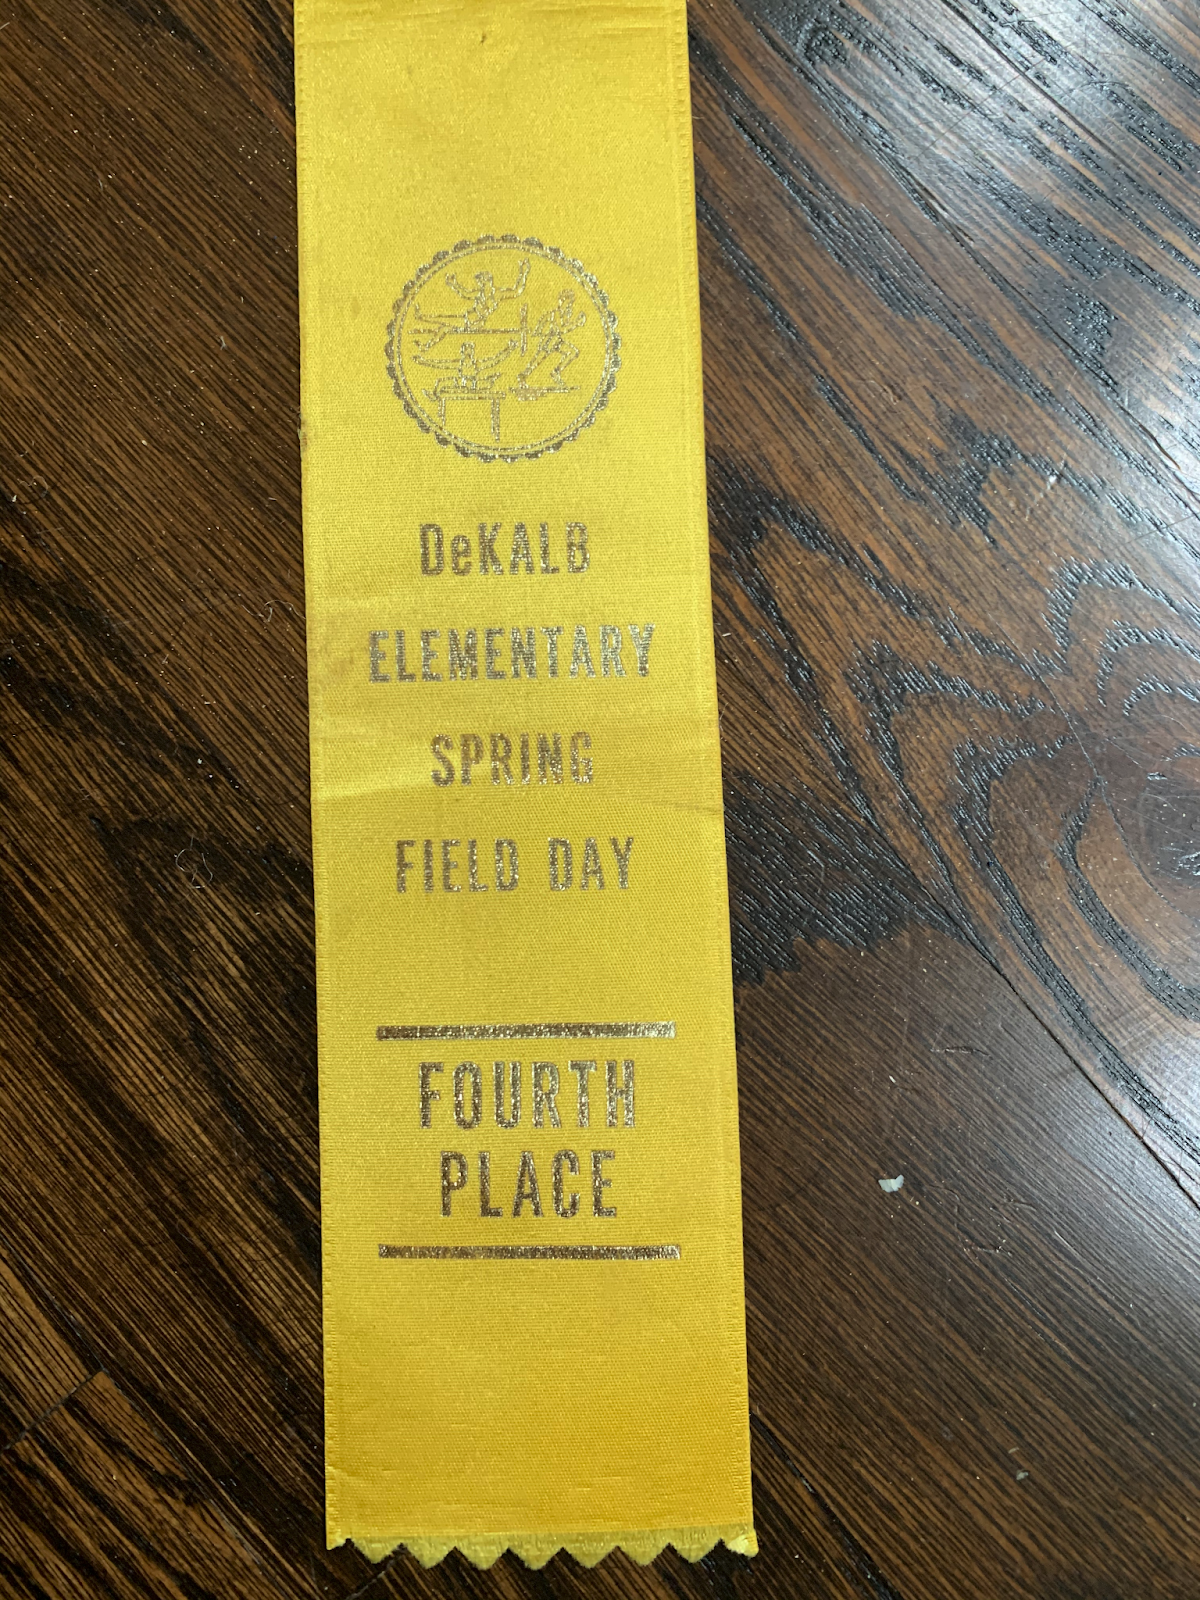 Ribbon for earning fourth place at field day at DeKalb Elementary School